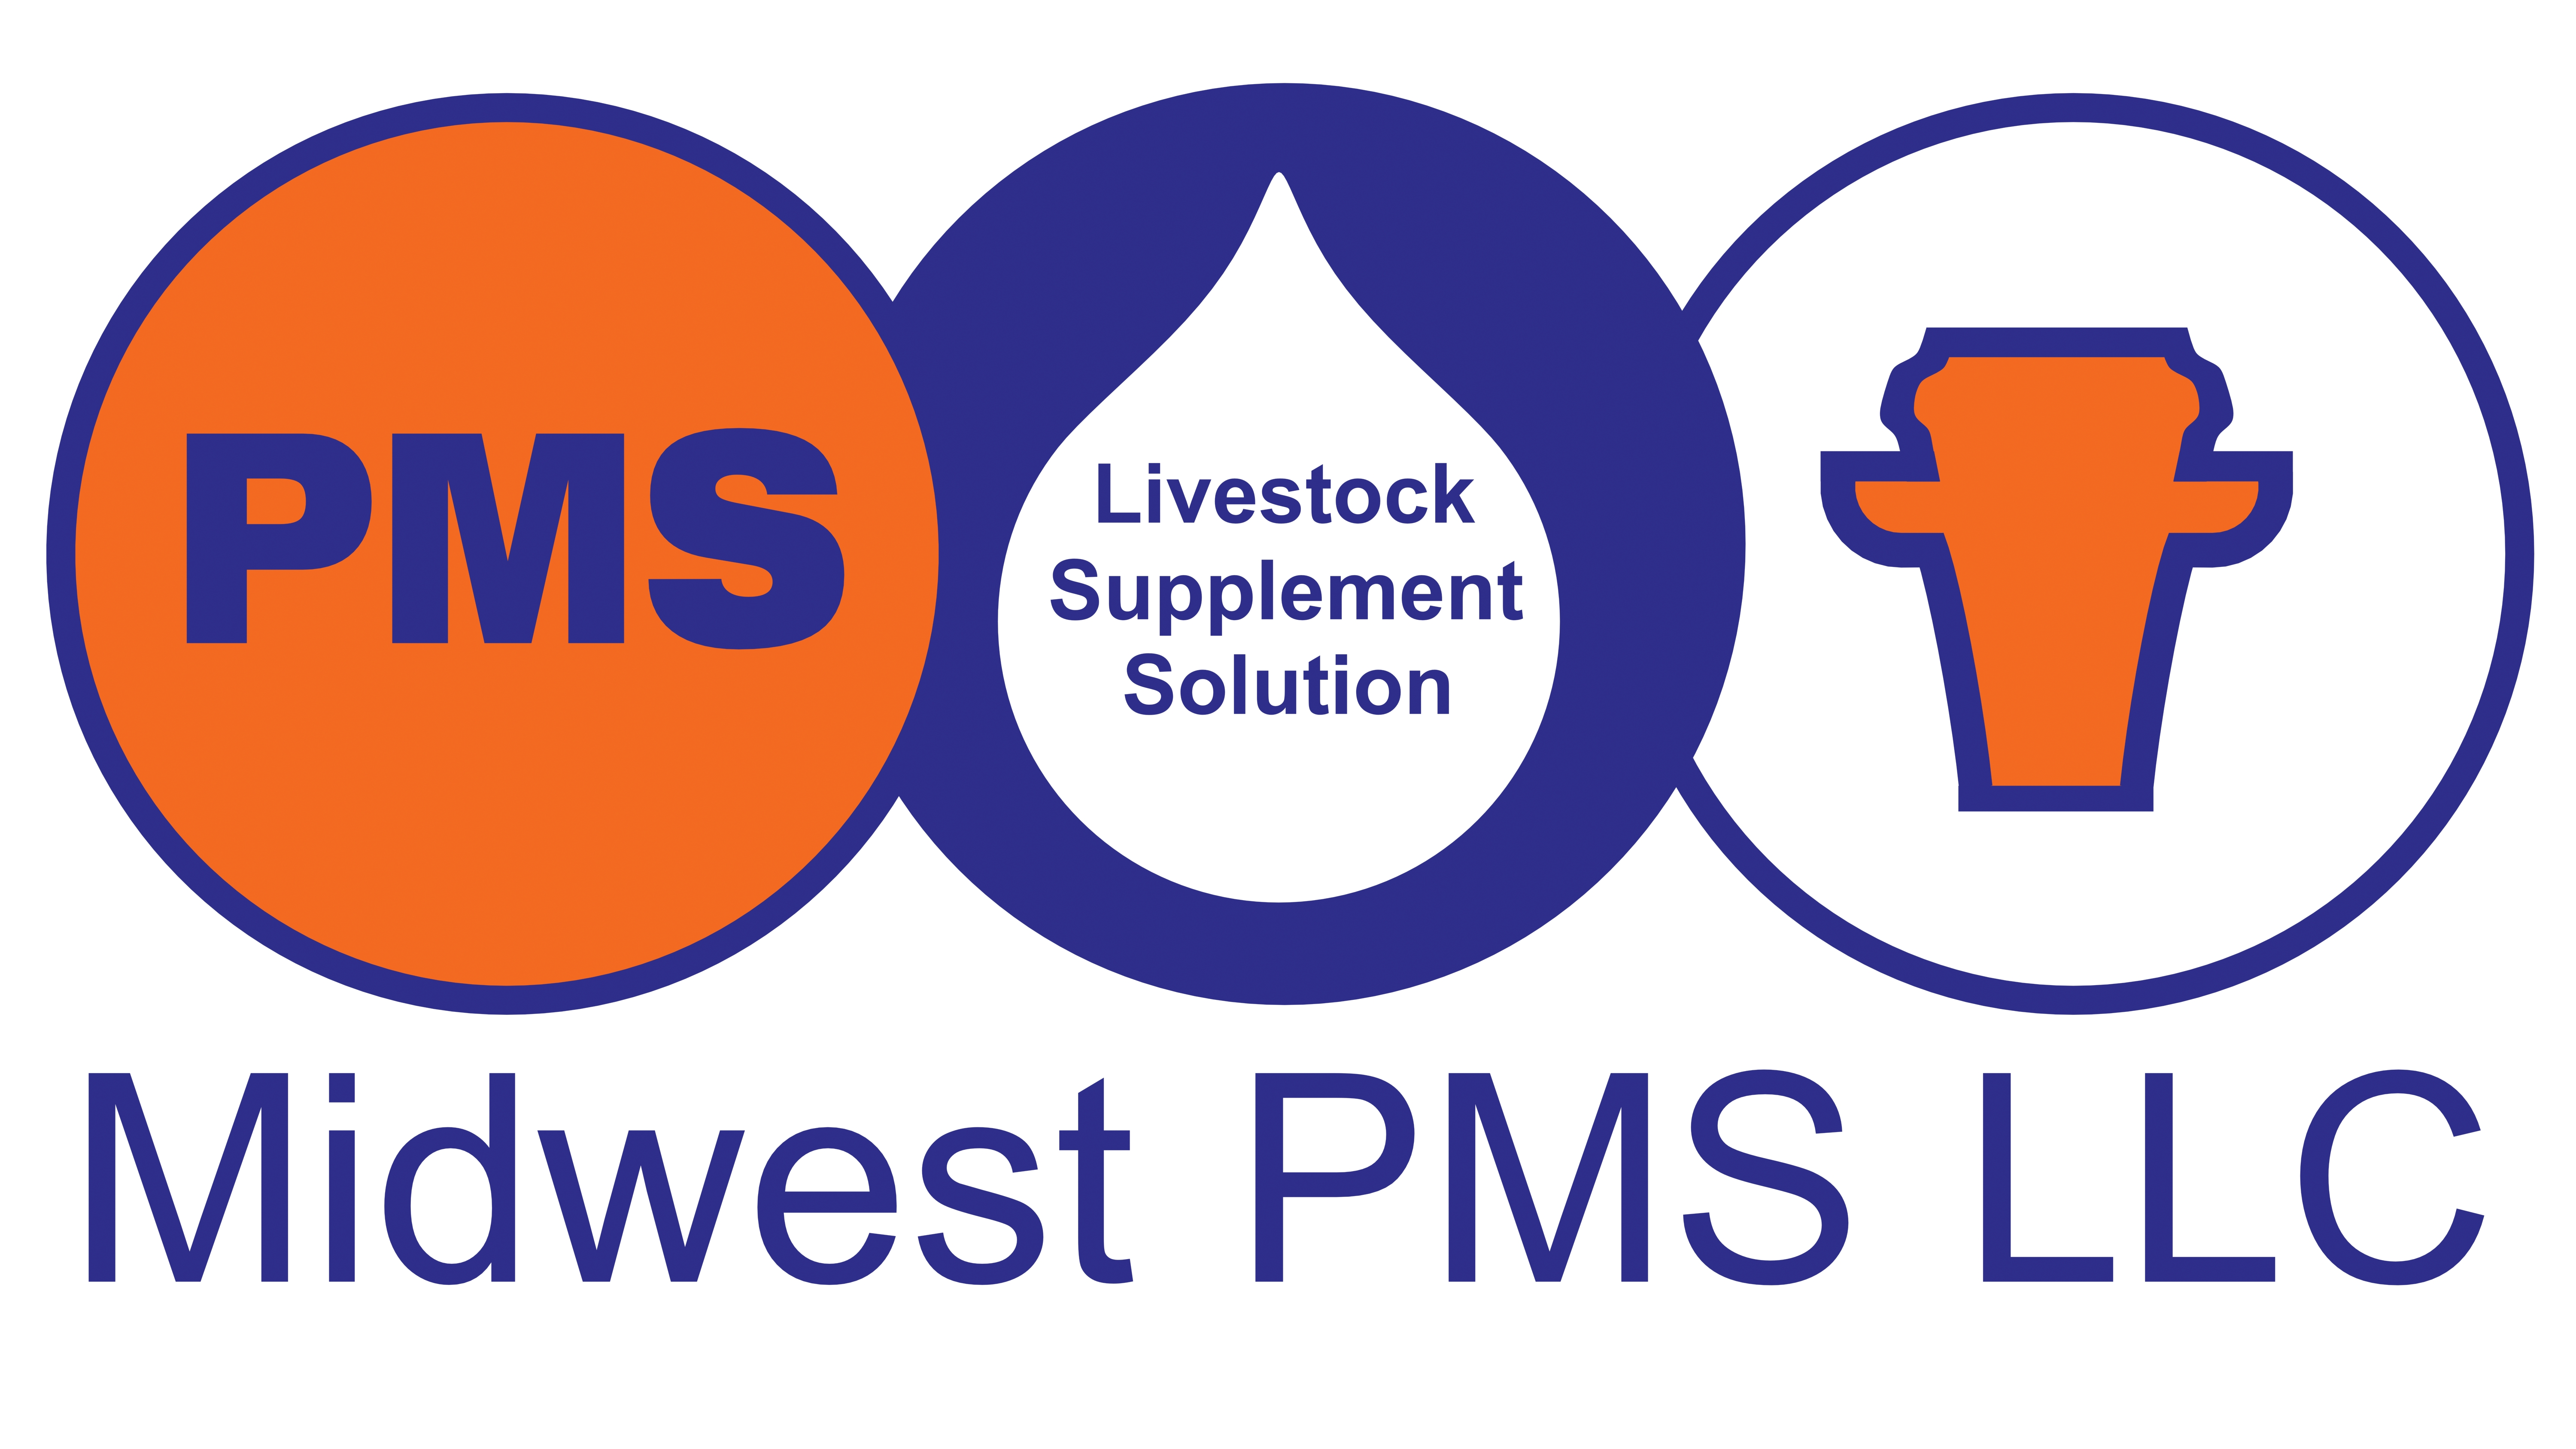 Midwest PMS